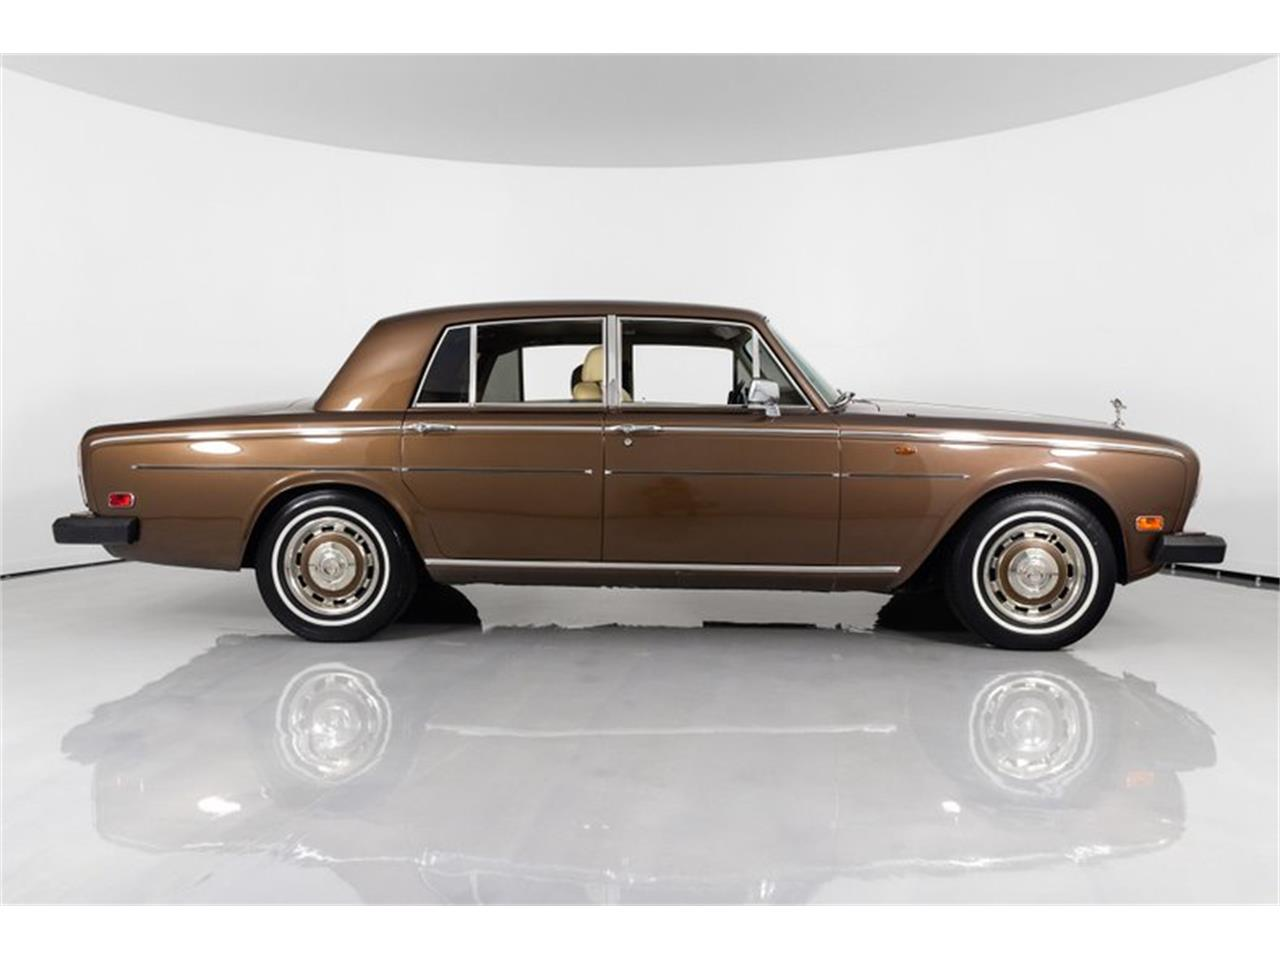 Large Picture of '81 Silver Shadow II located in St. Charles Missouri Offered by Fast Lane Classic Cars Inc. - QZ5G